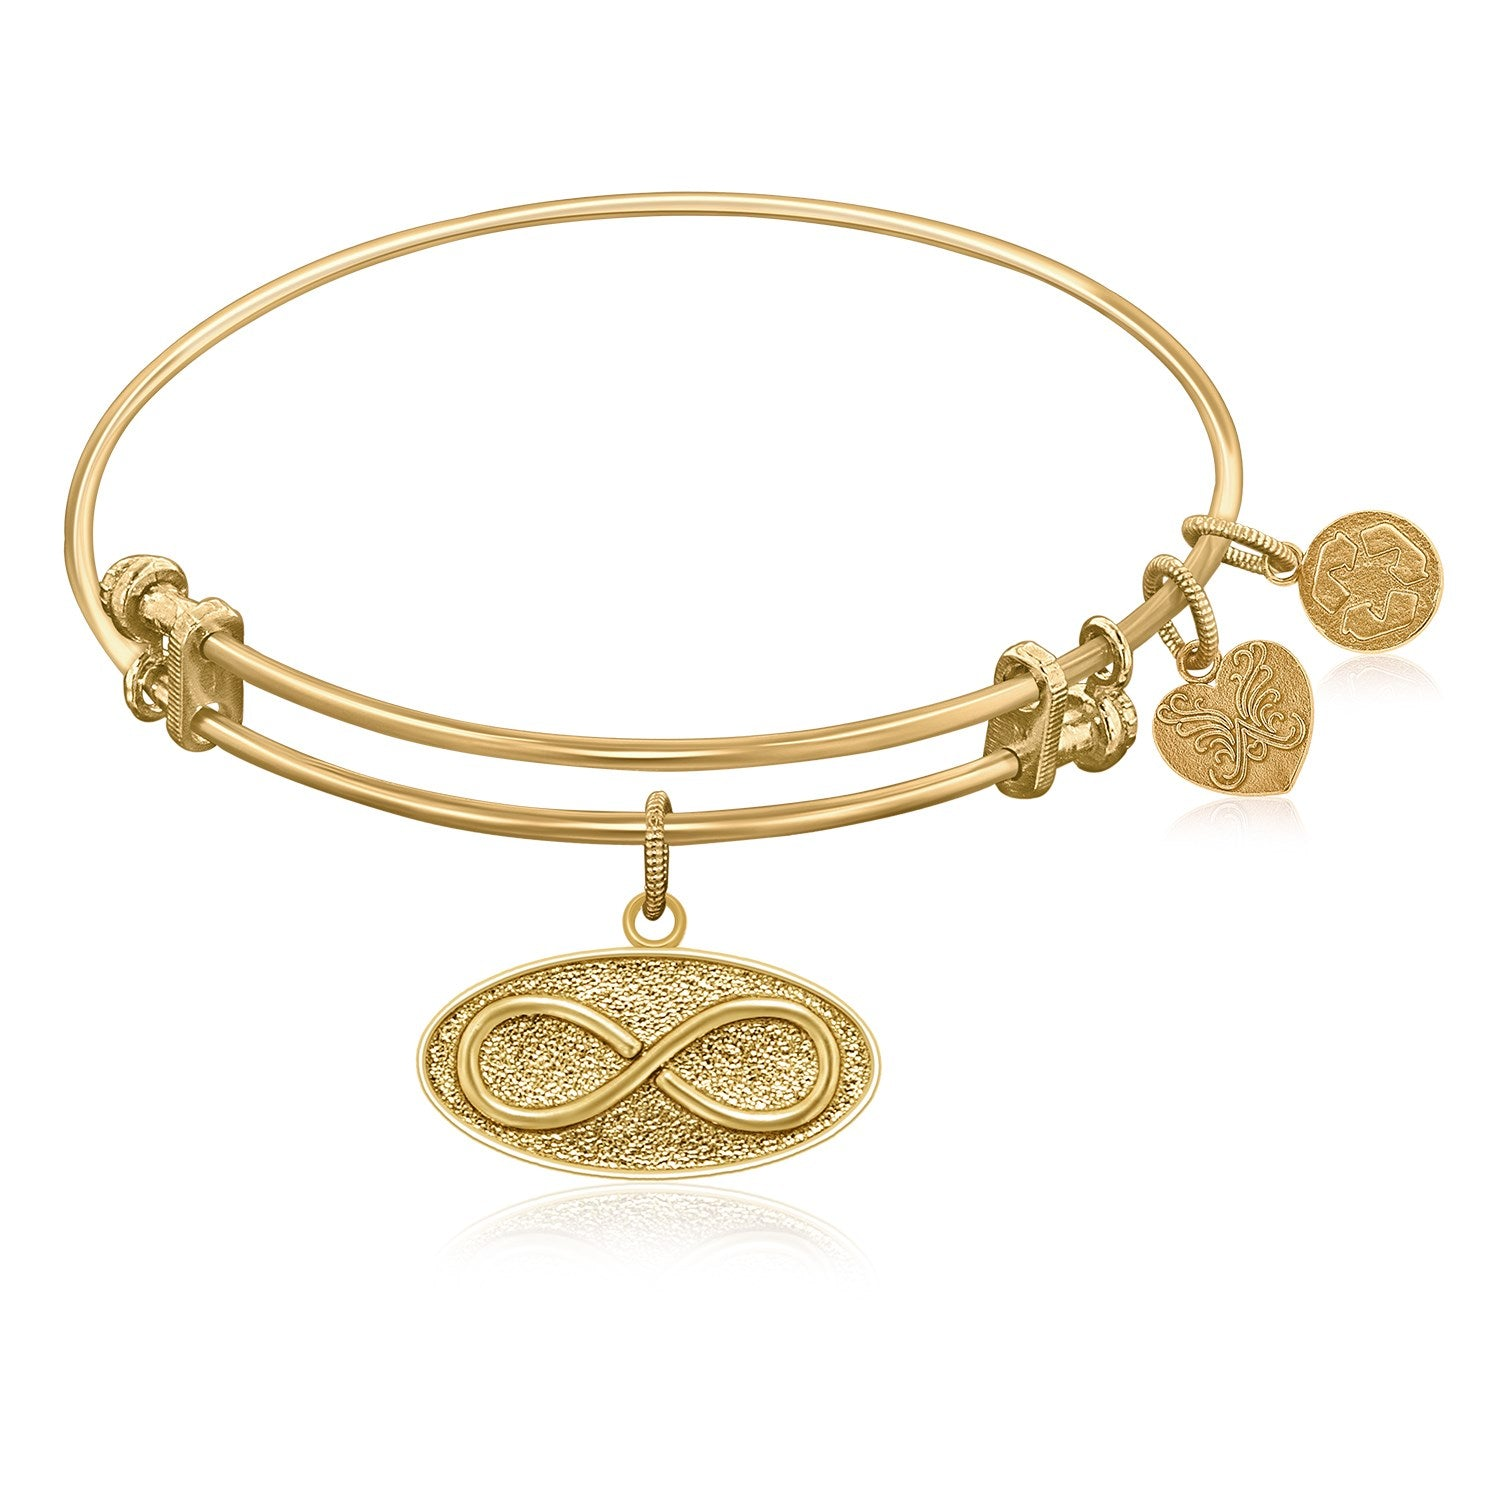 Expandable Bangle in Yellow Tone Brass with Infinity Unlimited Symbol